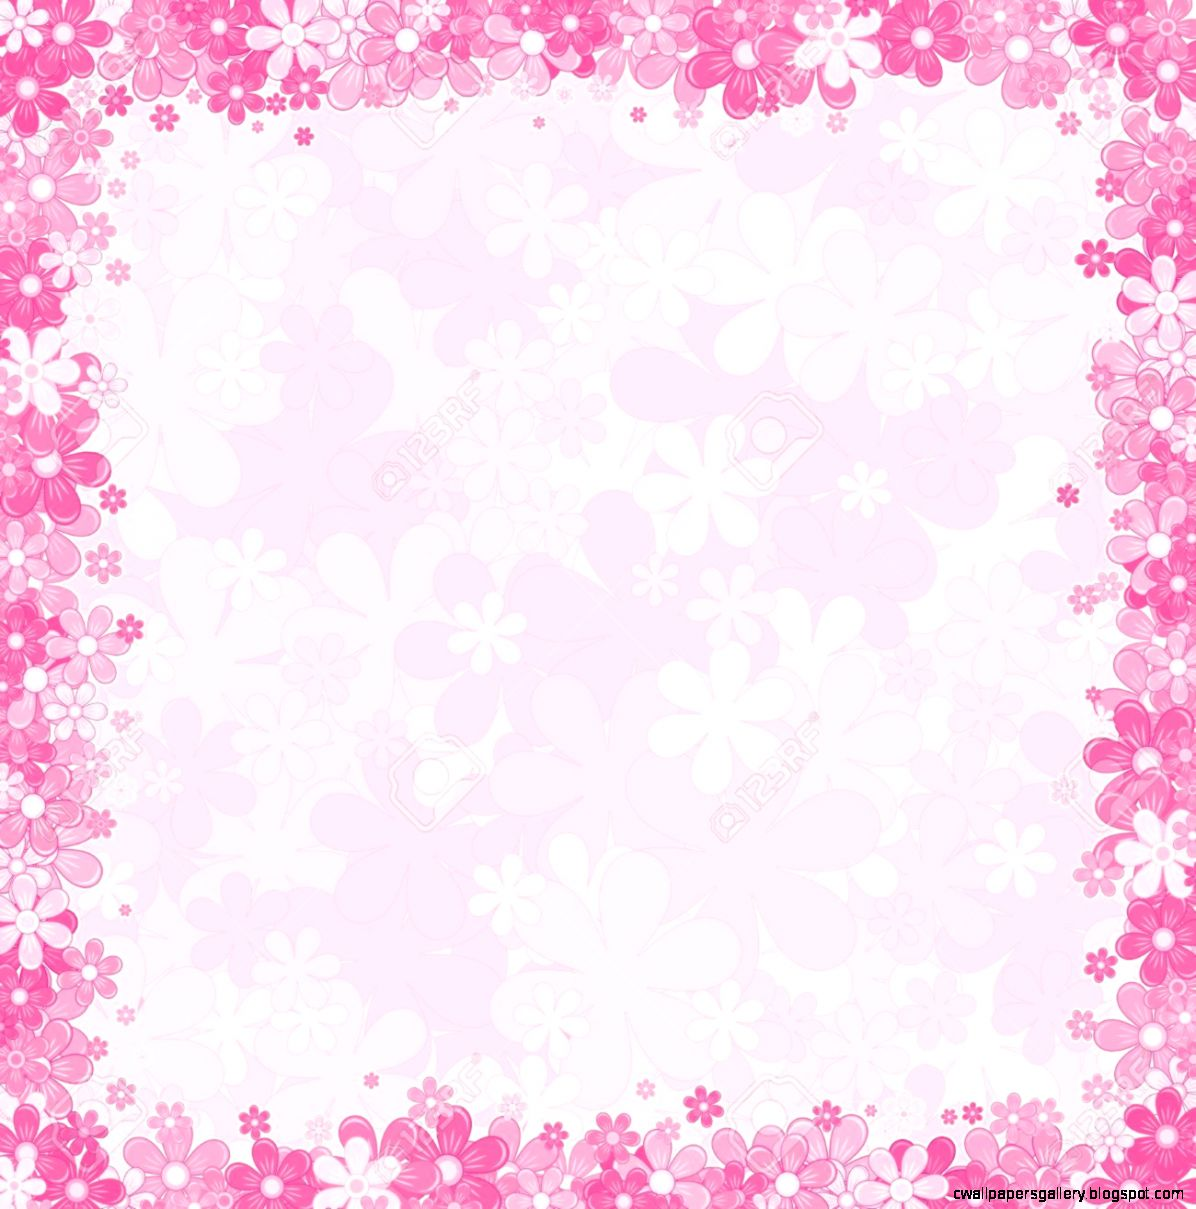 Pink flower background designs wallpapers gallery view original size mightylinksfo